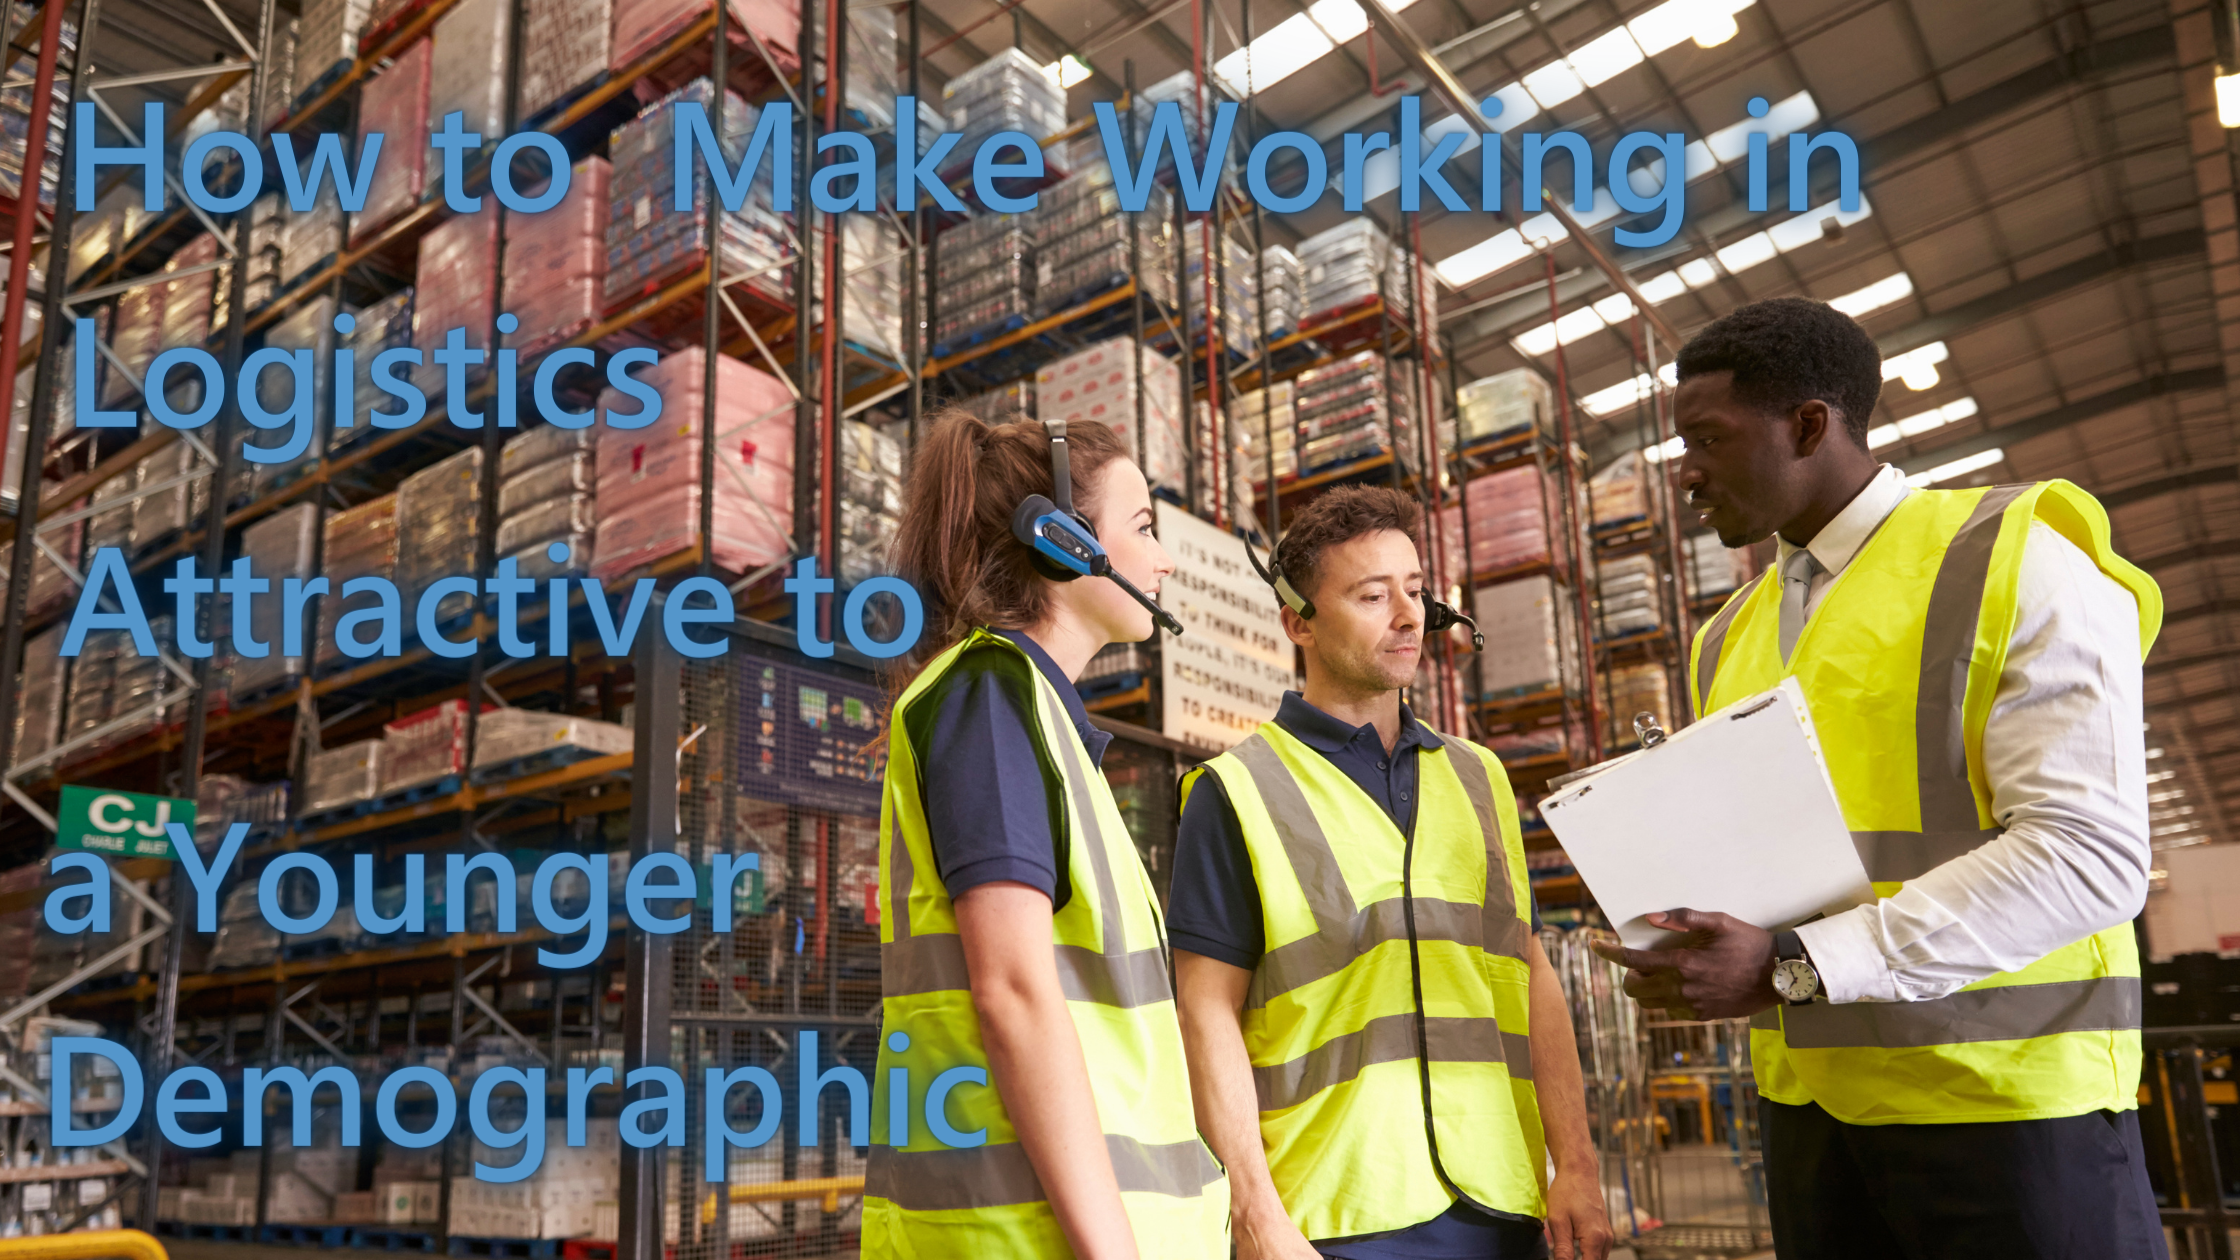 how-to-make-working-in-logistics-attractive-to-a-younger-demographic-millennials-working-in-warehouse